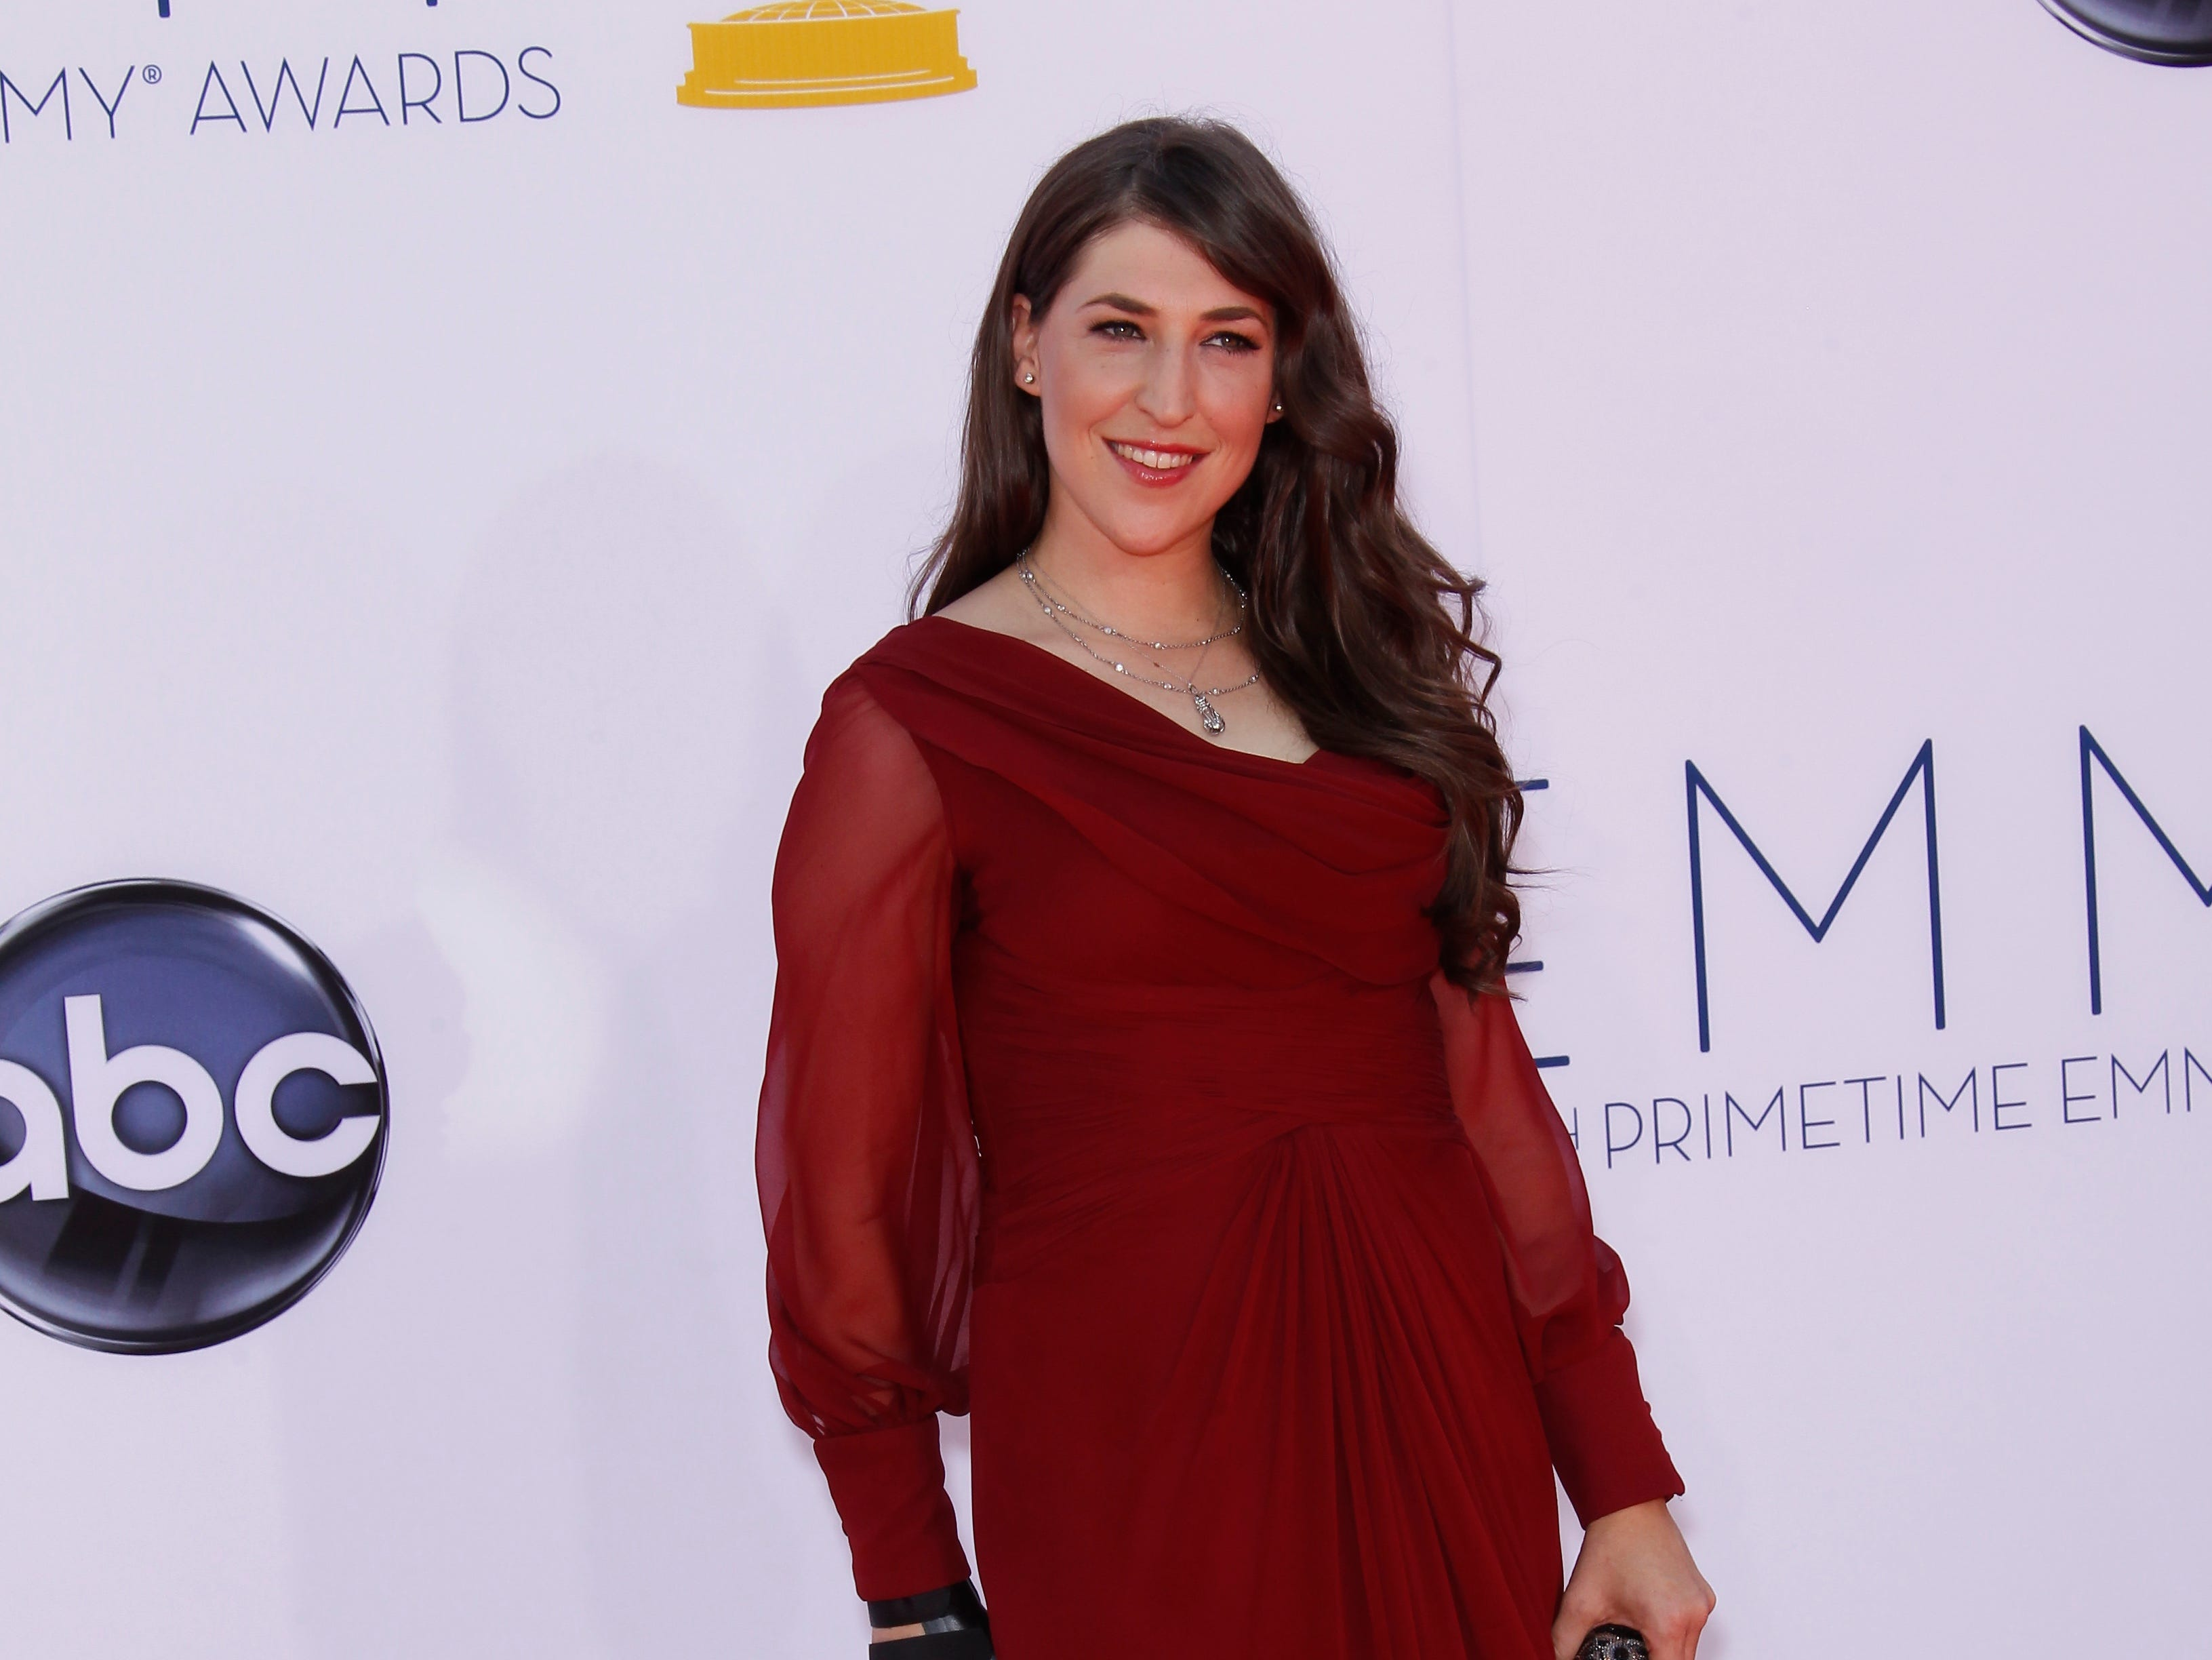 9/23/12 3:18:01 PM -- Los Angeles, CA, U.S.A  -- Mayim Bialik arrives at the 2012 Emmy Awards at the Nokia Theatre in Los Angeles, CA   Photo by Dan MacMedan, USA TODAY contract photographer   ORG XMIT: DM 42420 2012 EMMYS 9/22/2012  (Via OlyDrop)